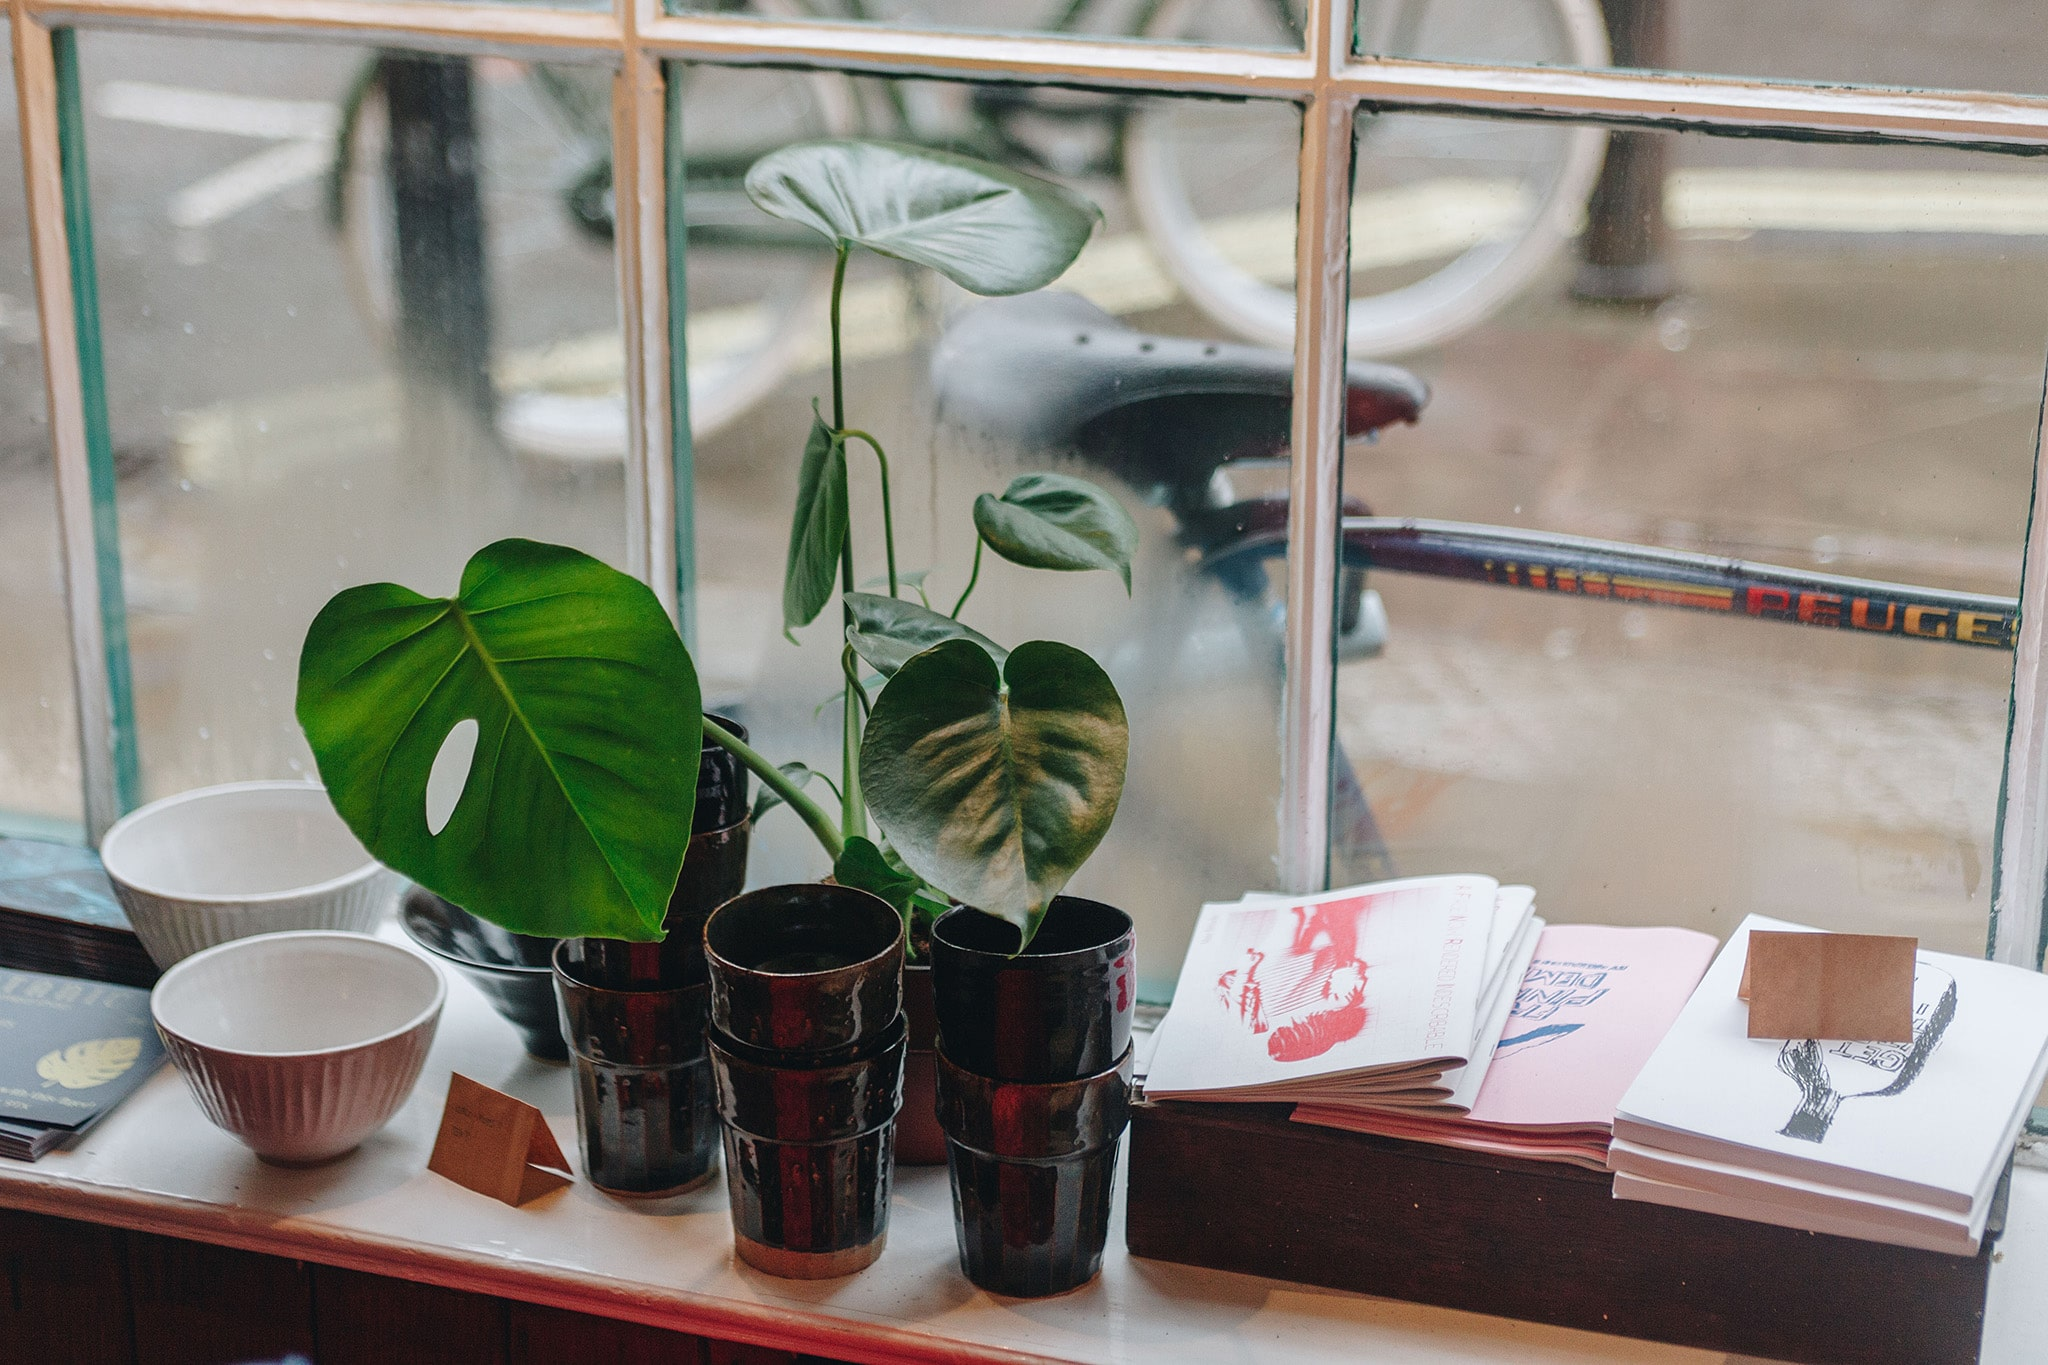 Intersectional feminist zines sit on a window sill in a boutique beside some ceramics and a plant.